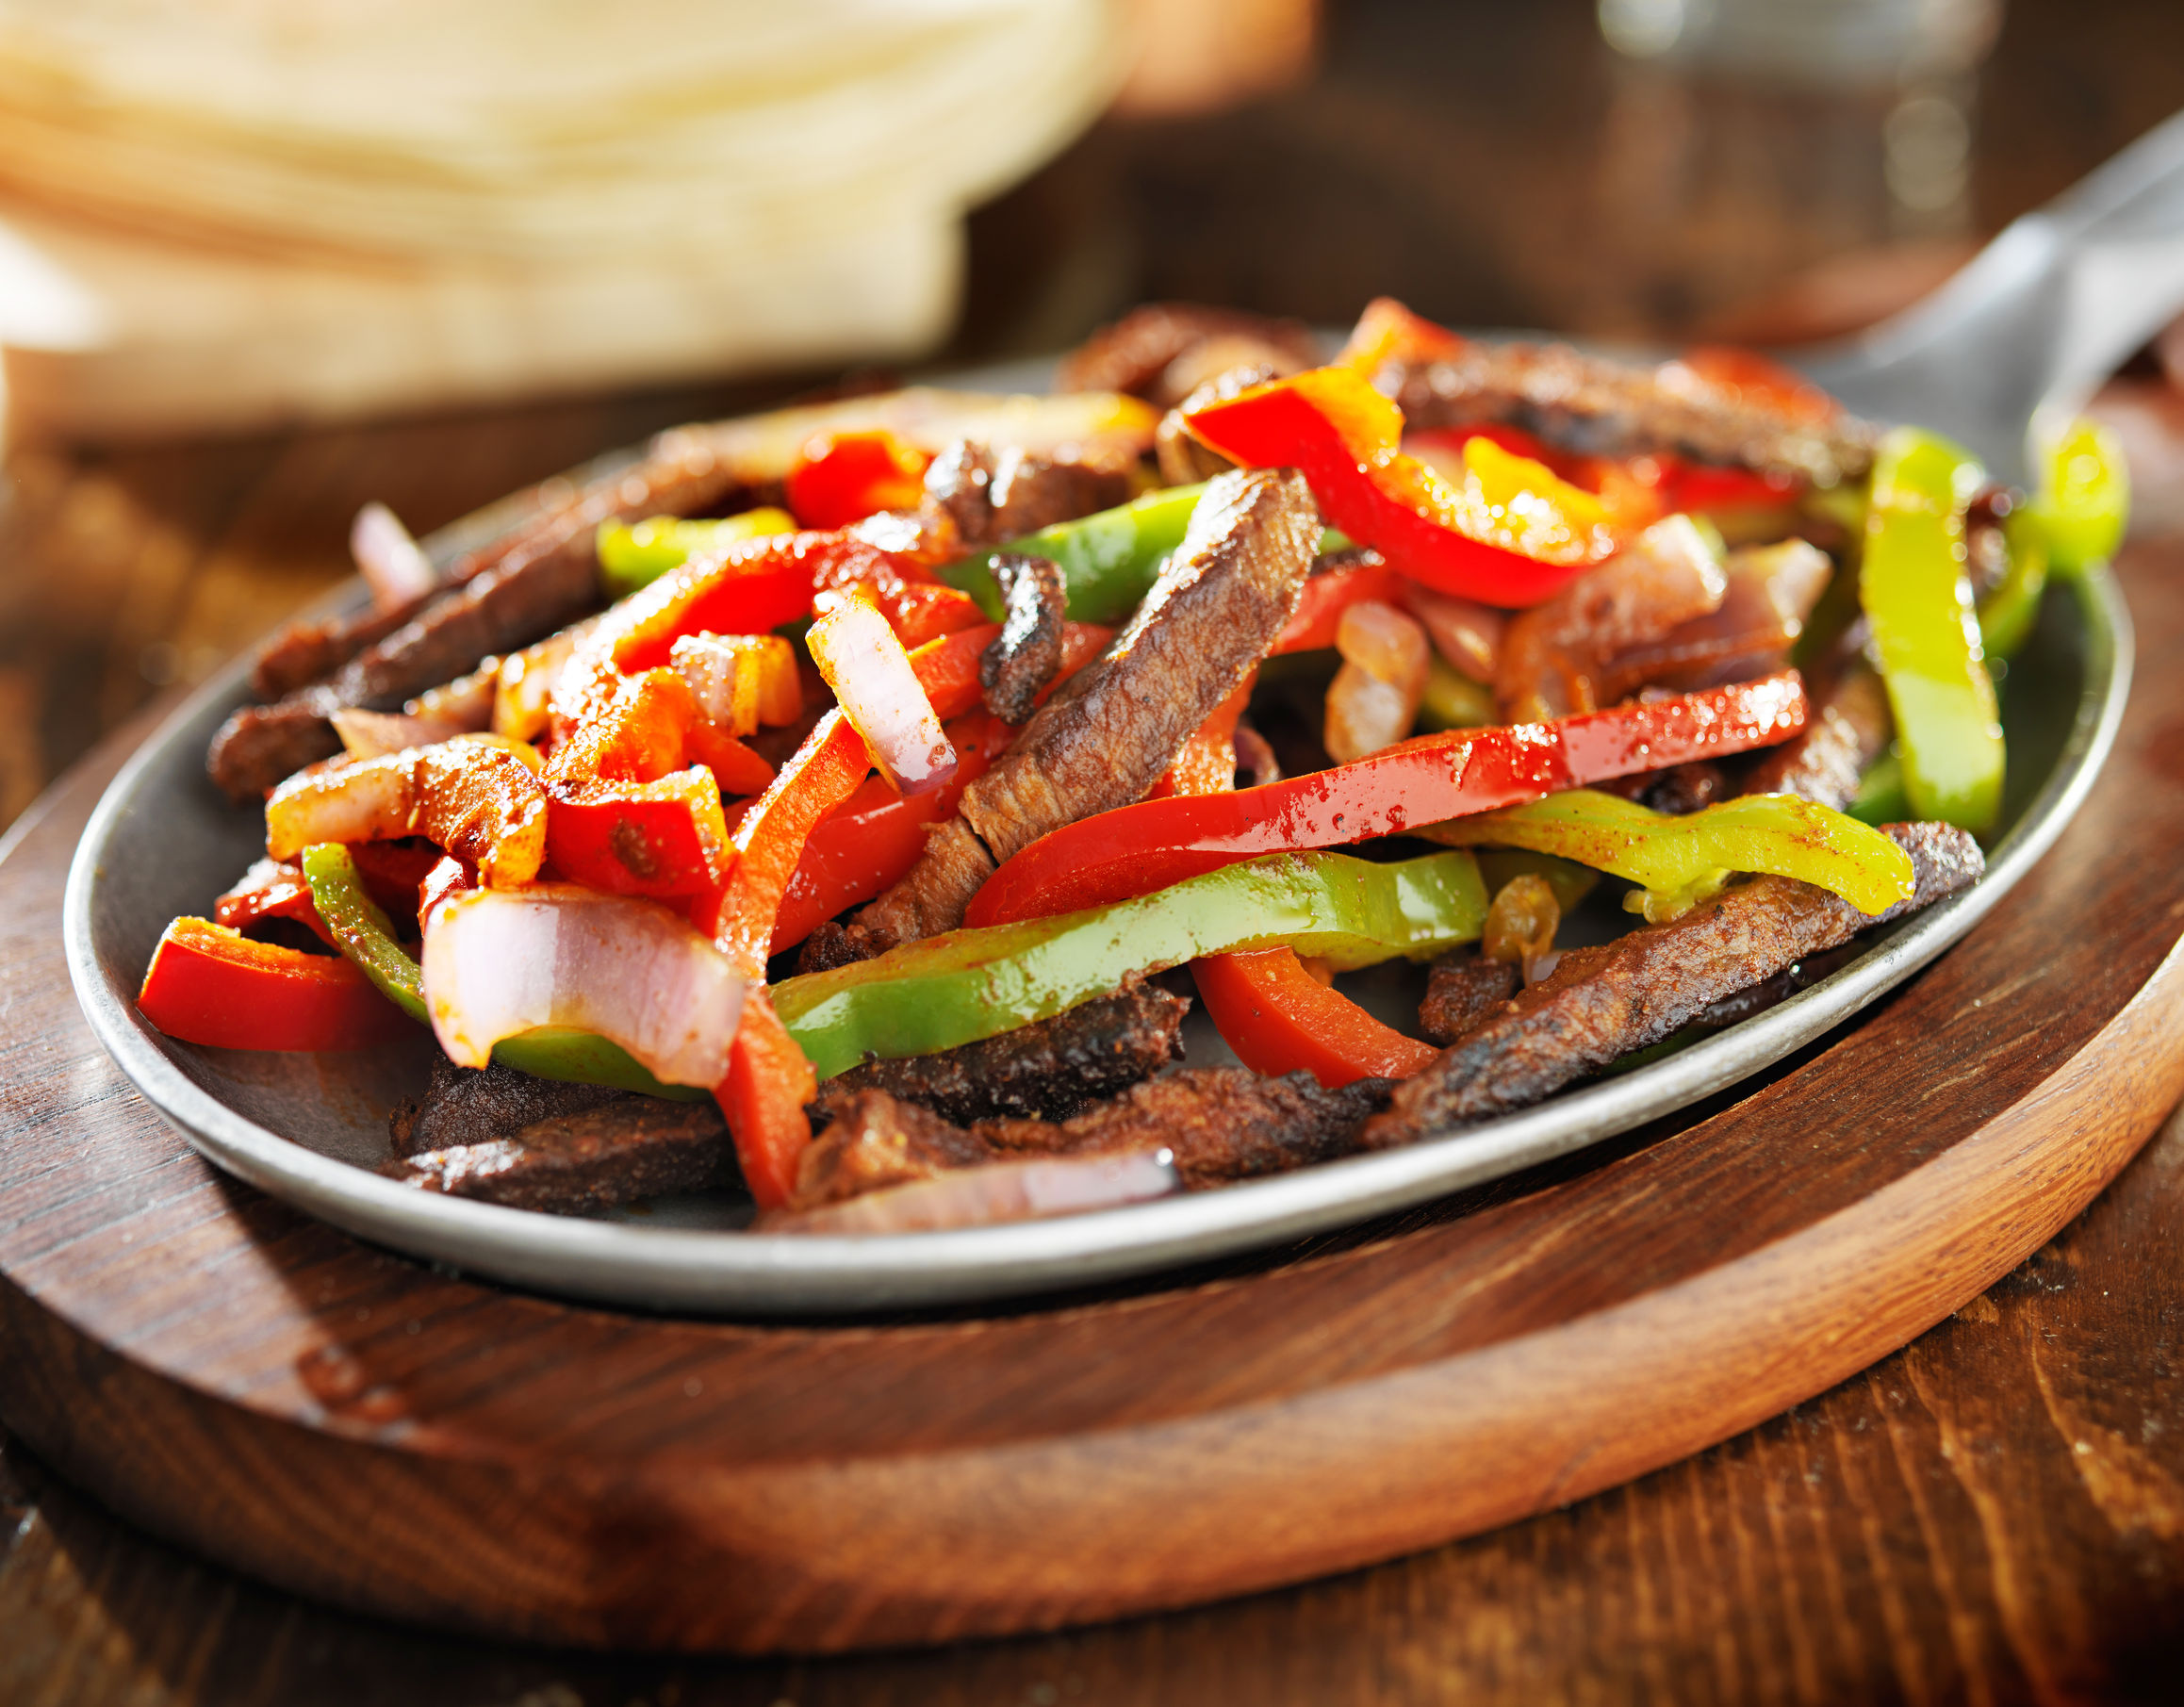 ... vegetable fajitas chicken or beef fajitas chicken beef fajitas texas